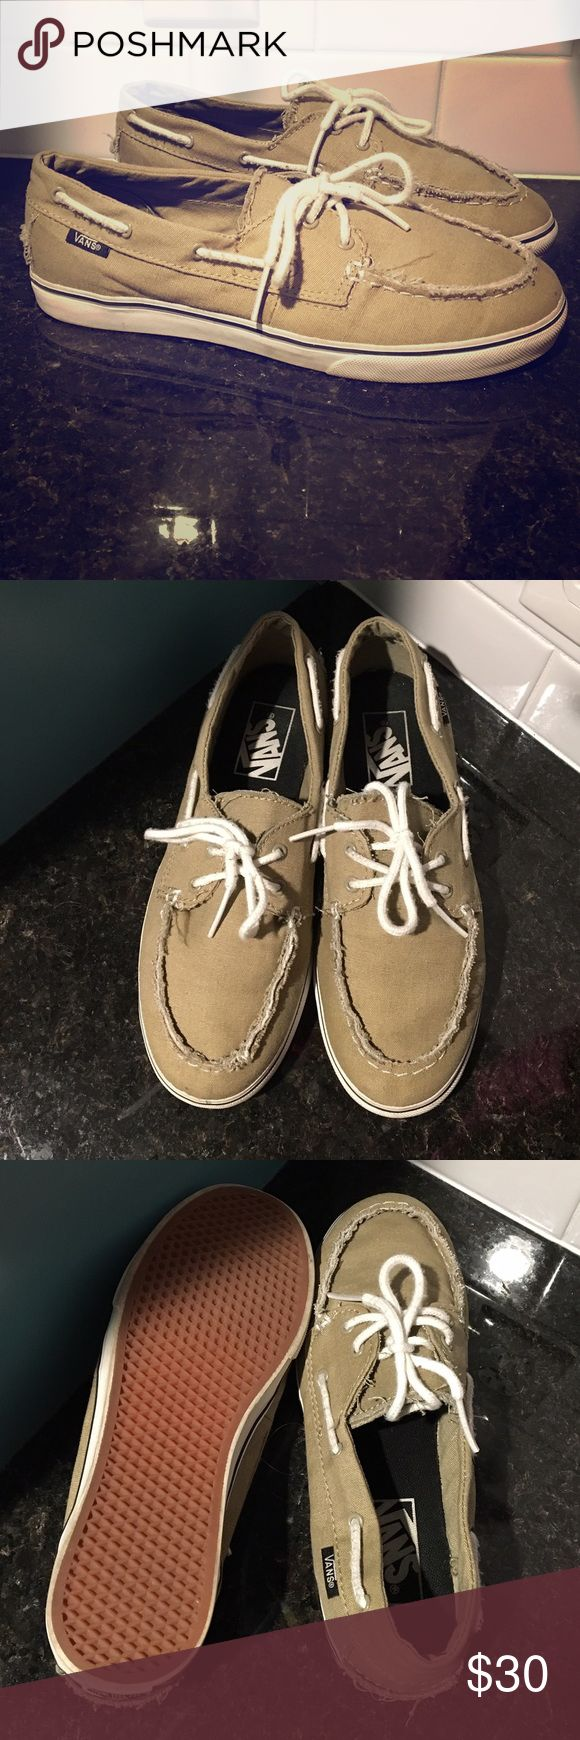 "Vans Deck ⛵️ Boat Shoe Vans boat shoe. Deck shoe. Men's size 5. Women's size 6.5 but fit larger. 10"" sole. Only worn a few times but too narrow for me (I think they would comfortably fit a women's size 7 but please double check van sizing chart). Tongue says TB4R. Tan beige sperry dock. Unisex. Zapato del barco. Distressed. I wear a 7.5wide and they fit but are too narrow. THE TAG SAYS 6.5 W. Vans Shoes Flats & Loafers"